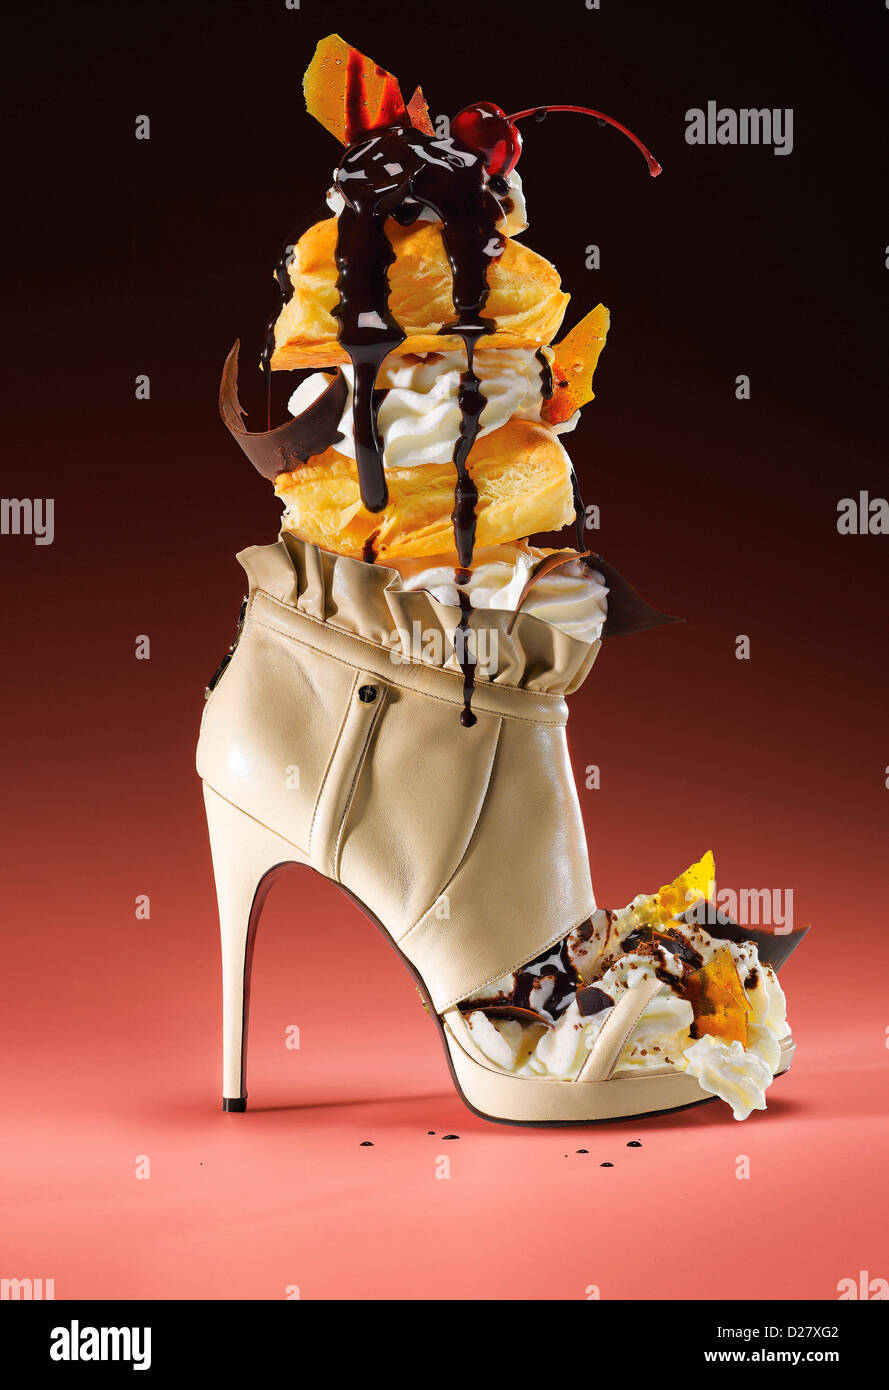 bff0bd920cf High Heel Shoe Filled With Ice Cream Sundae on Pink Background Stock ...